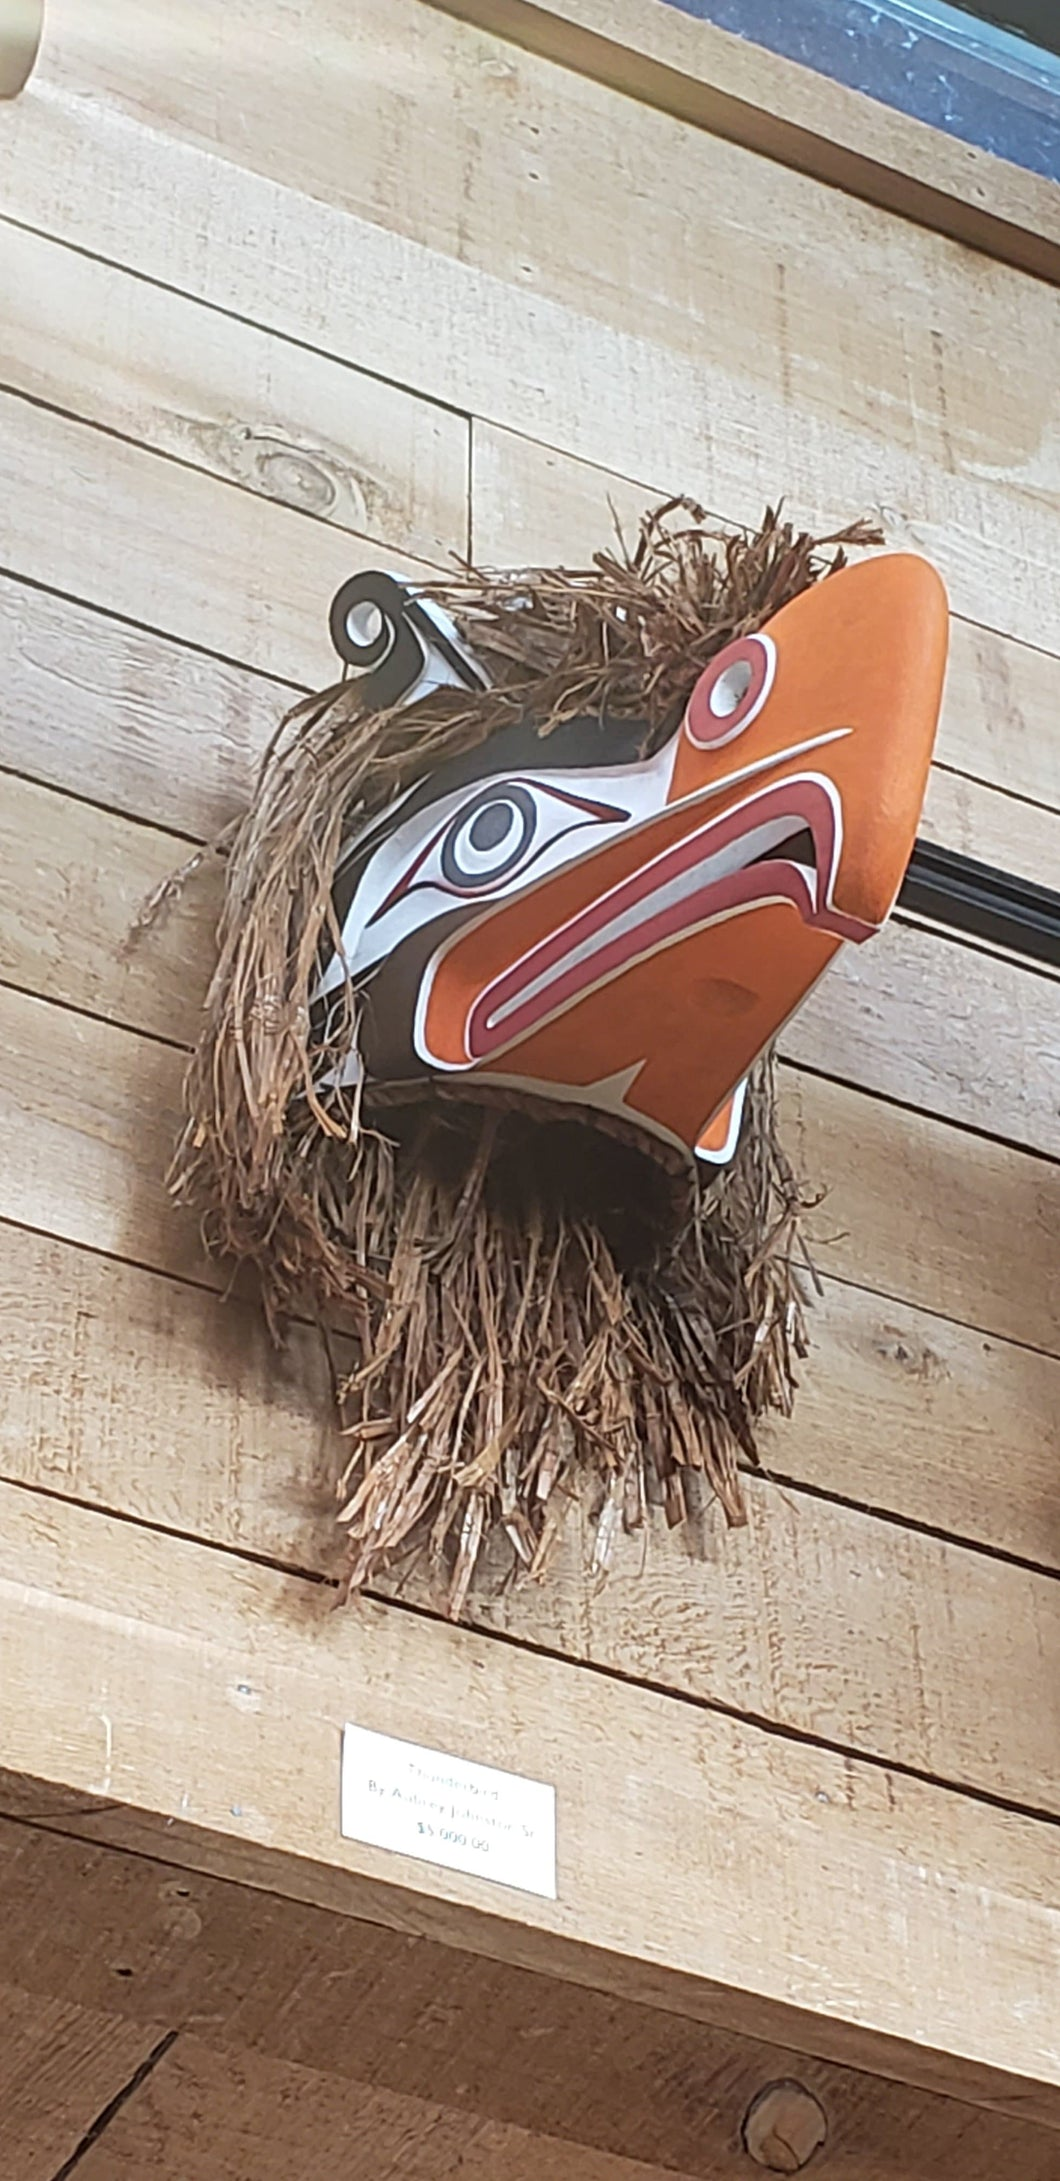 Thunderbird Mask by Aubrey Johnston Sr